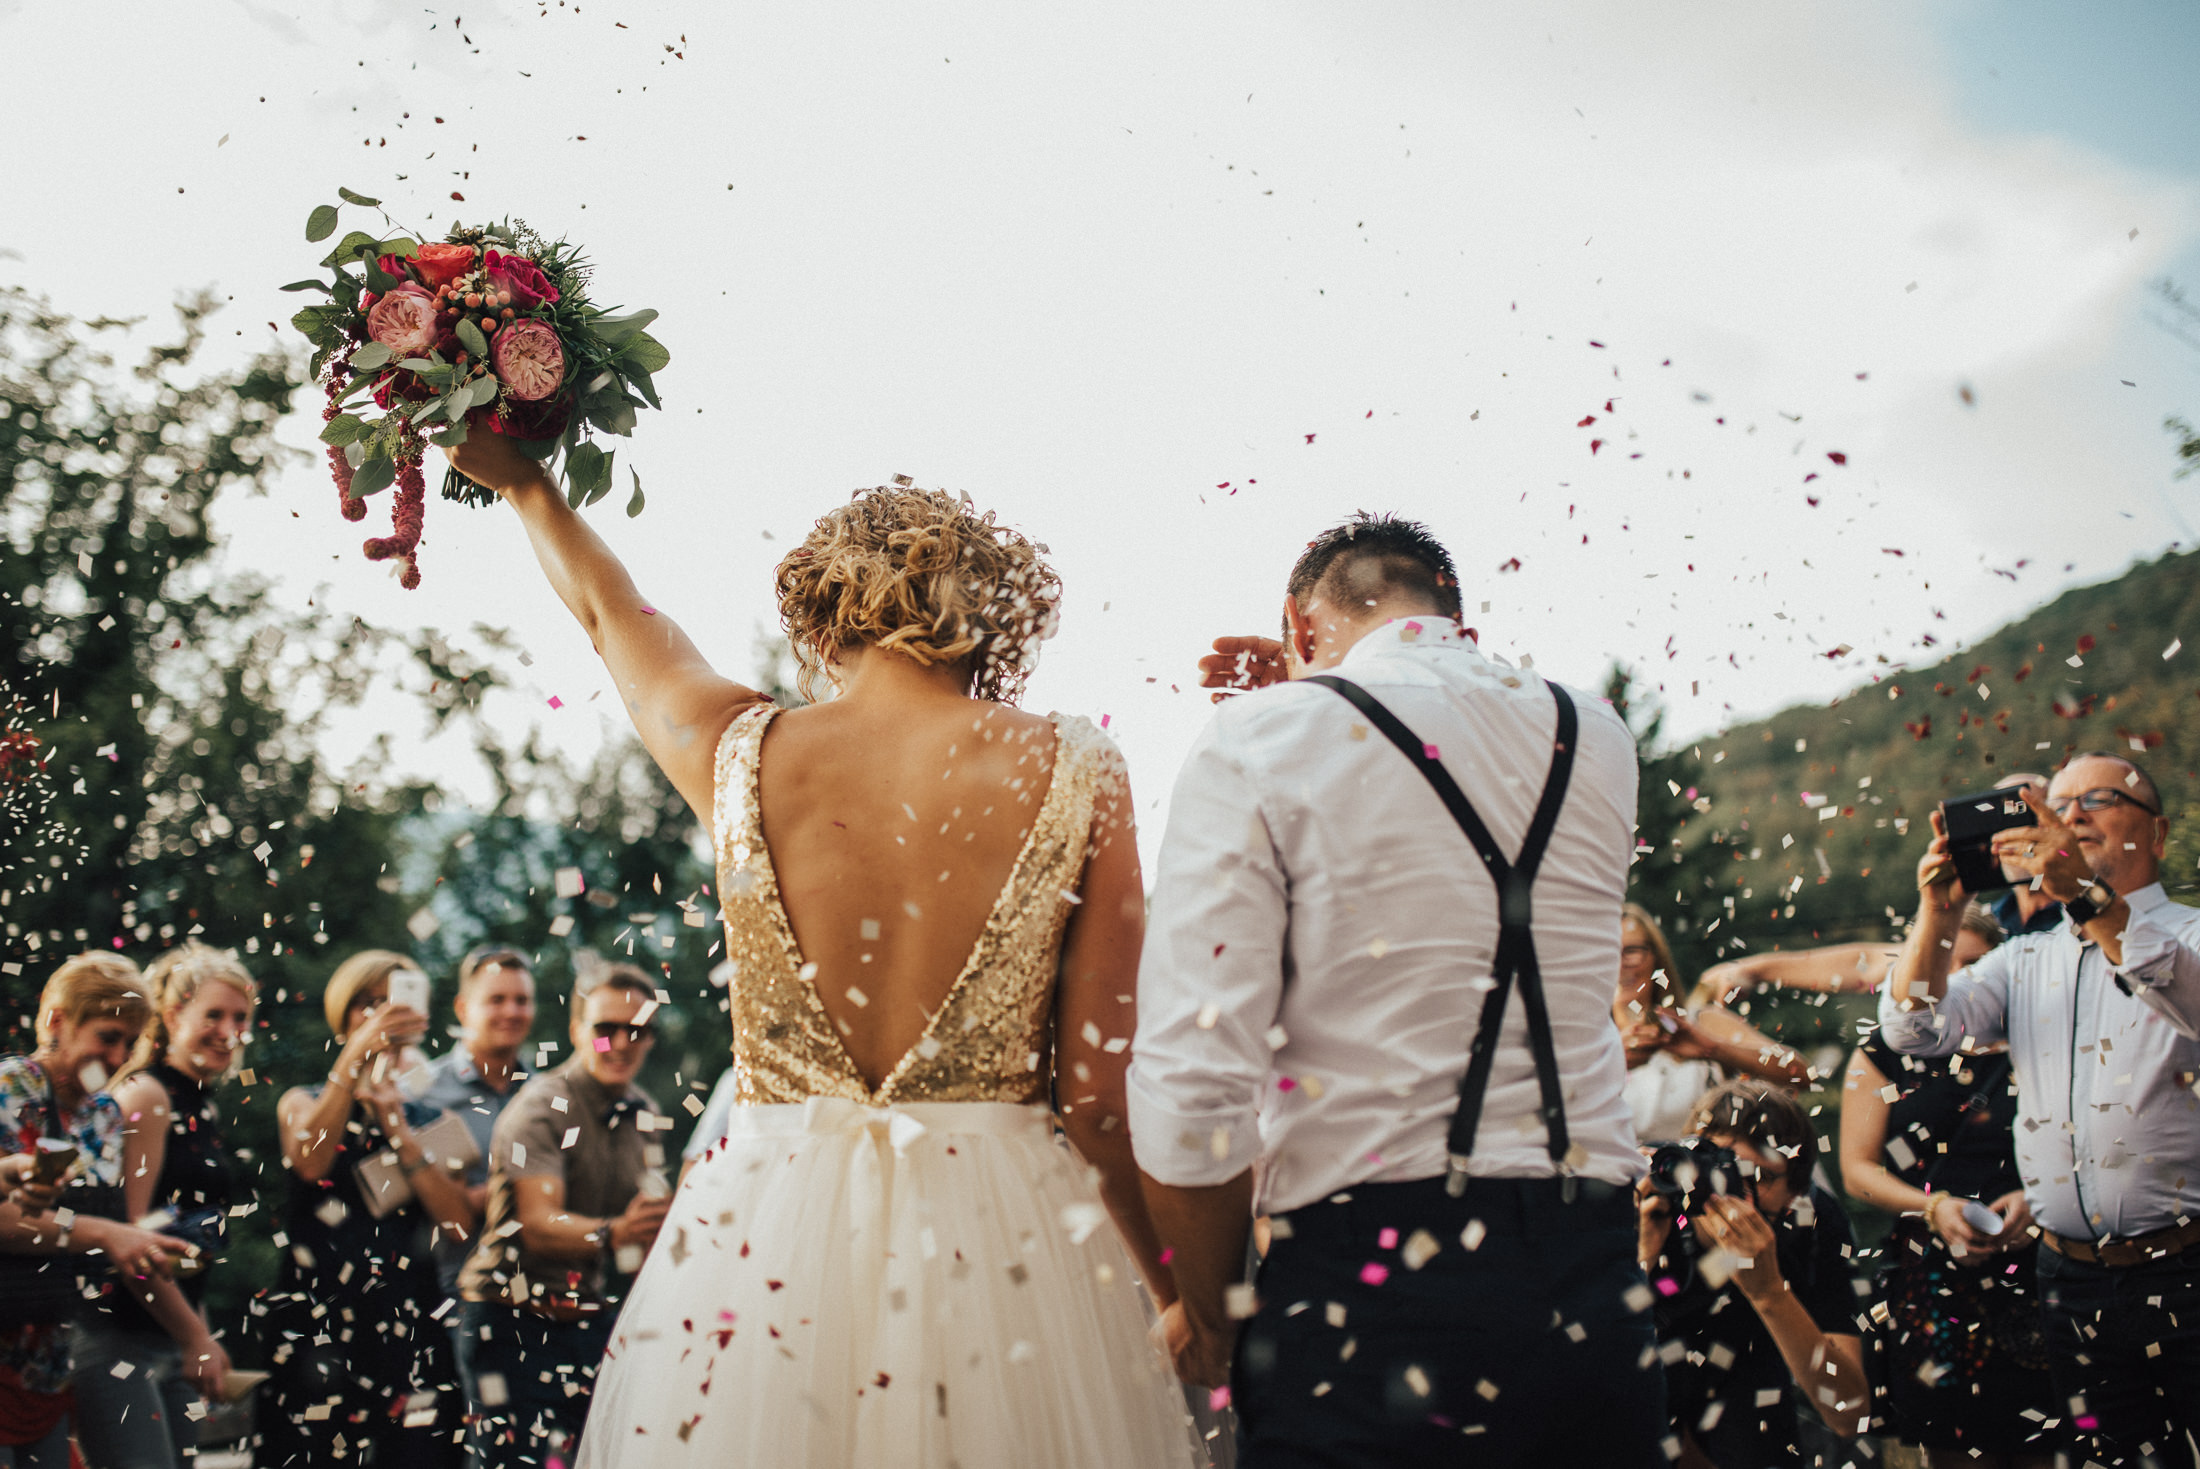 buying wedding insurance by farquhar and black insurance